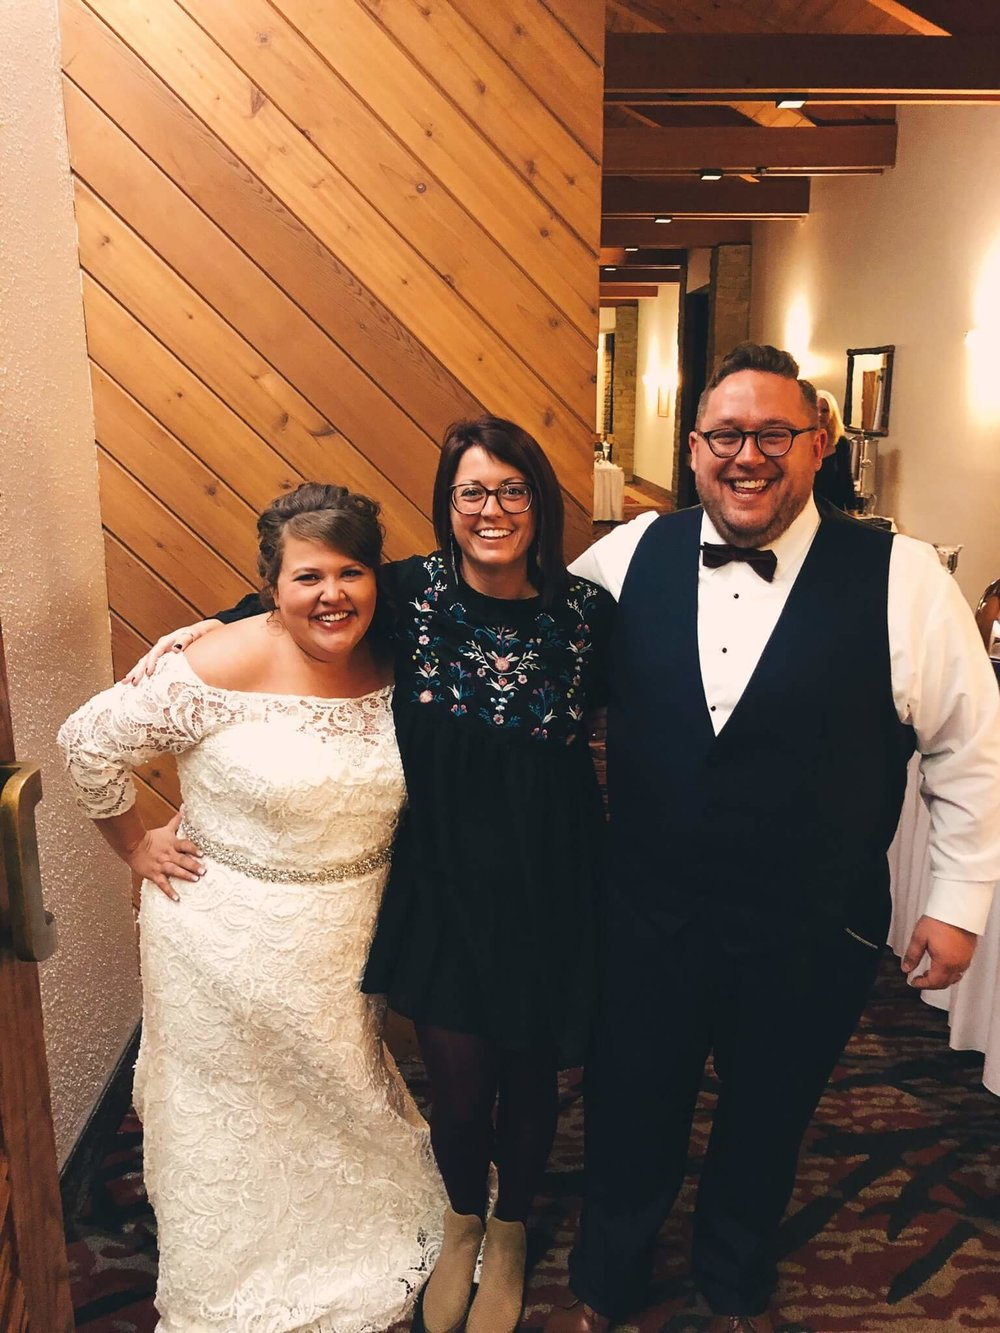 - -I got to see one of my oldest friends get married!